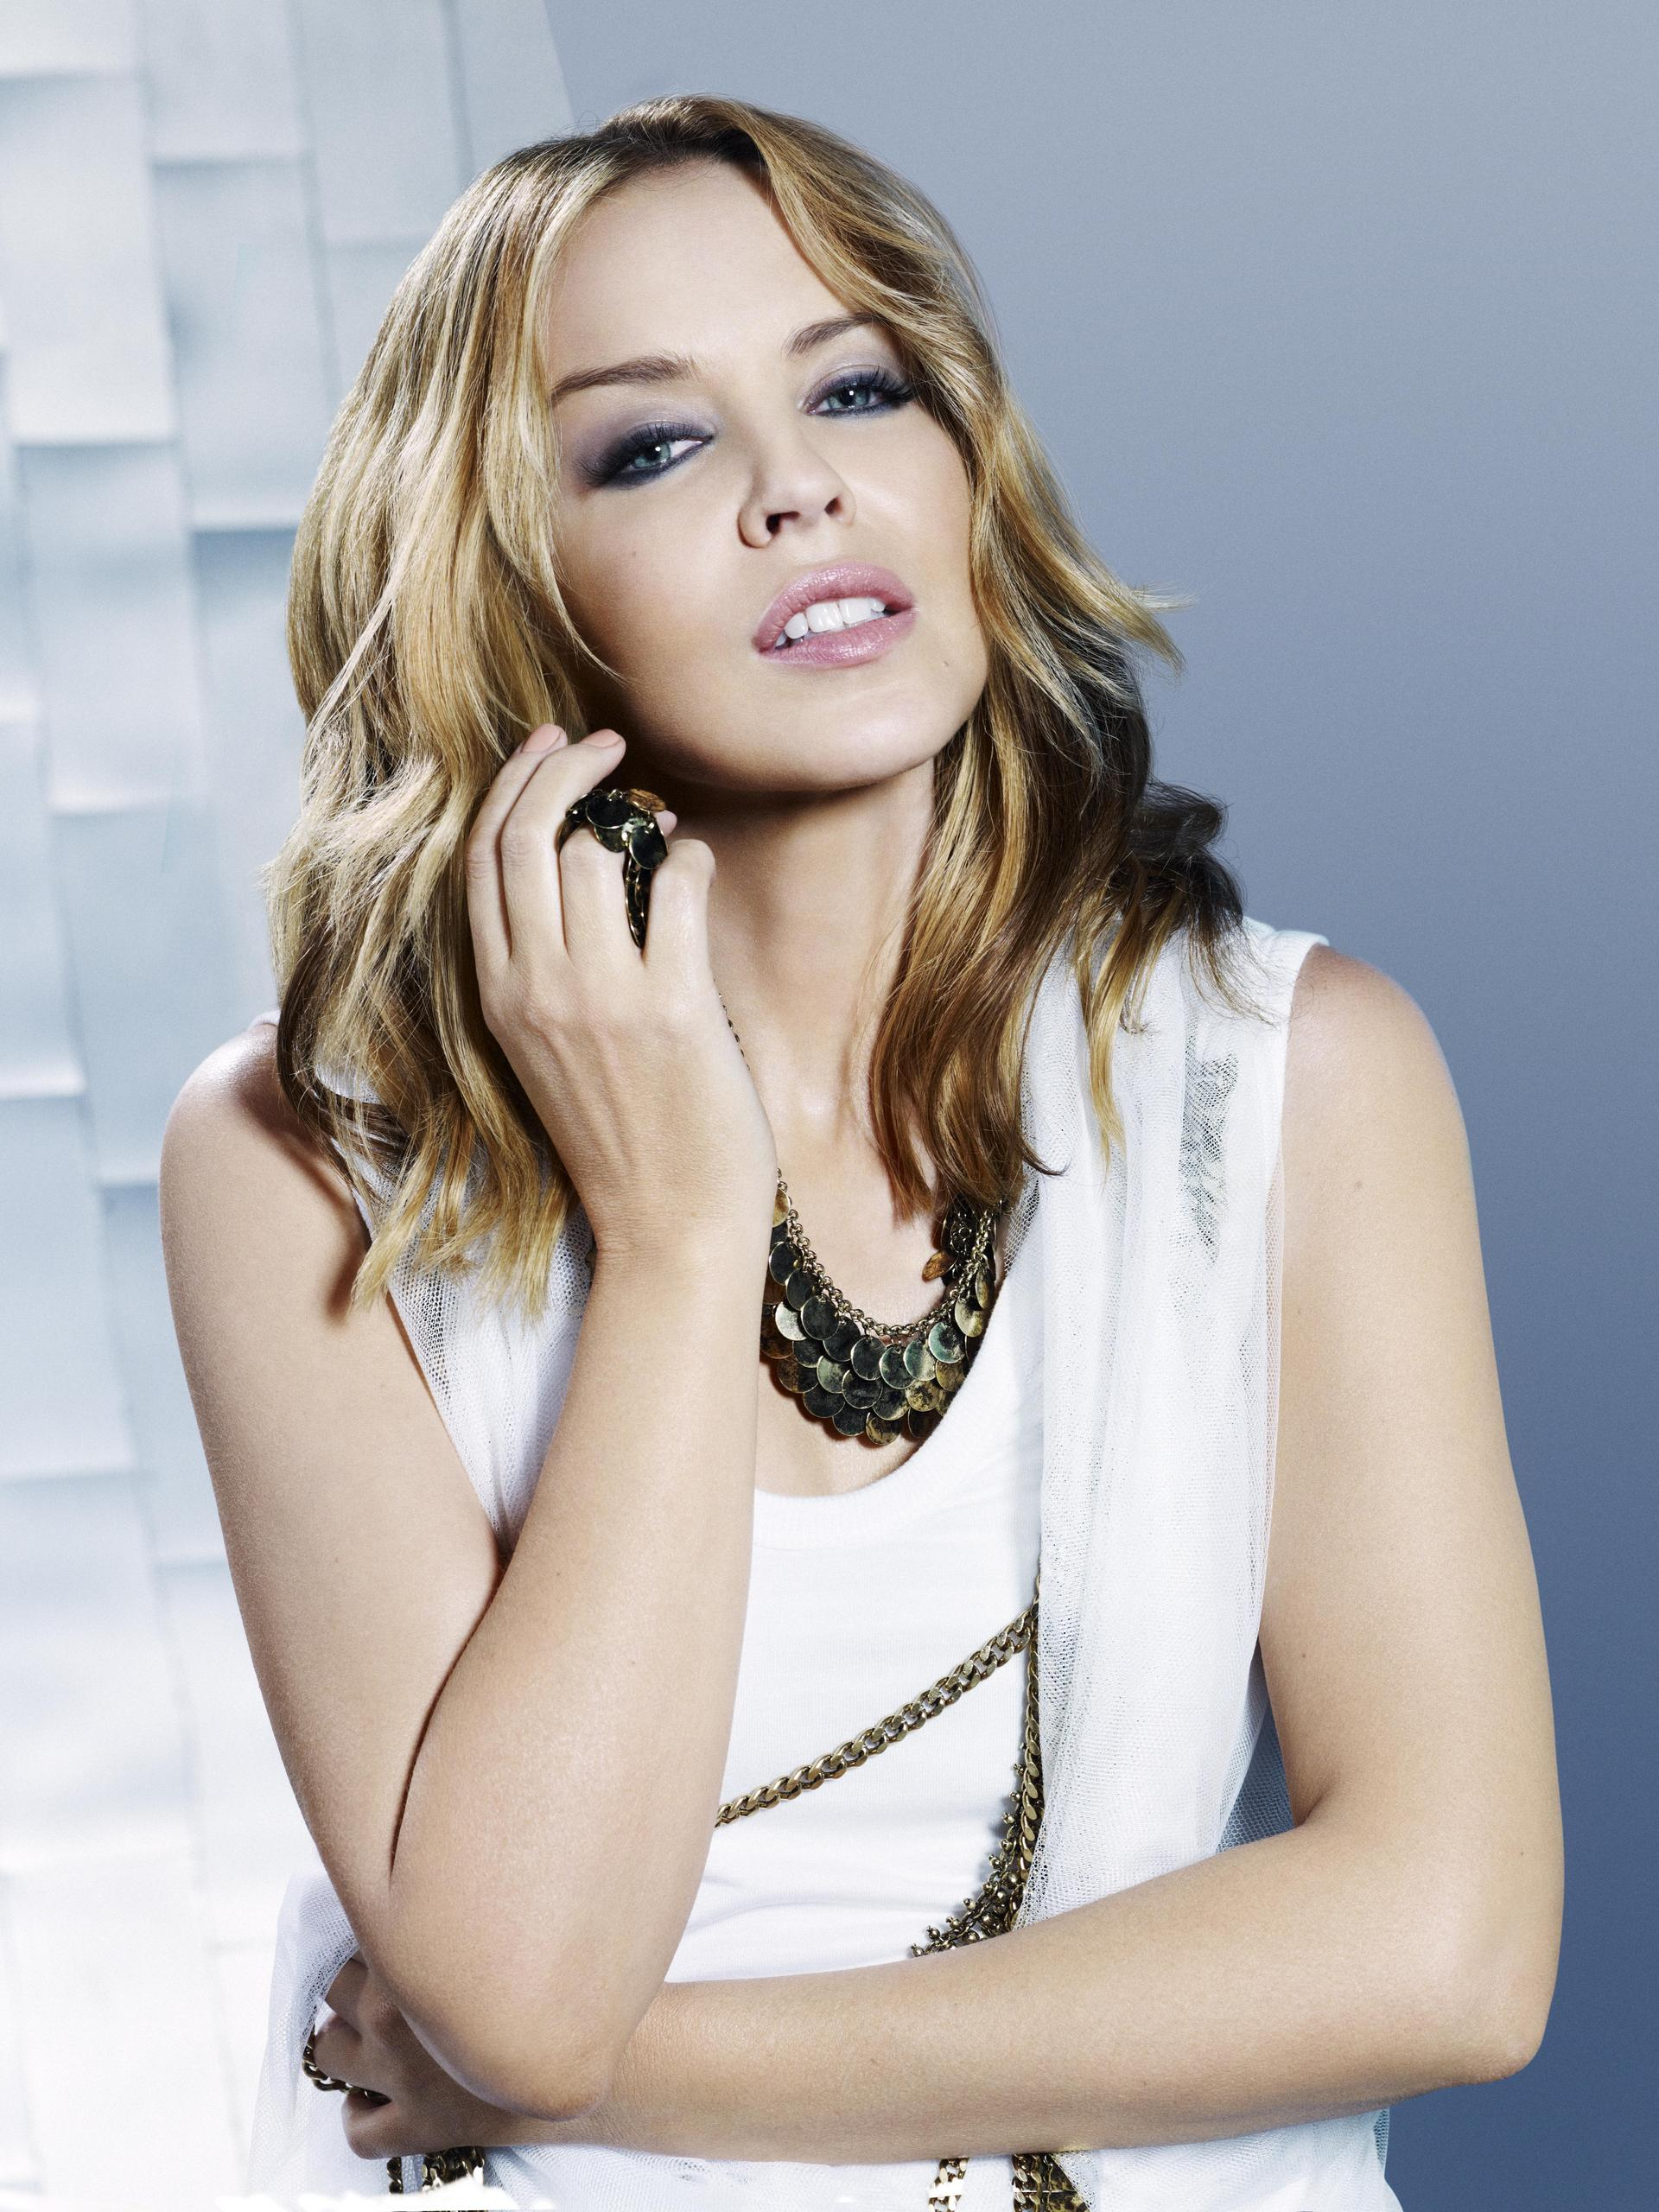 Kylie Minogue Images Kylie Minogue HD Wallpaper And